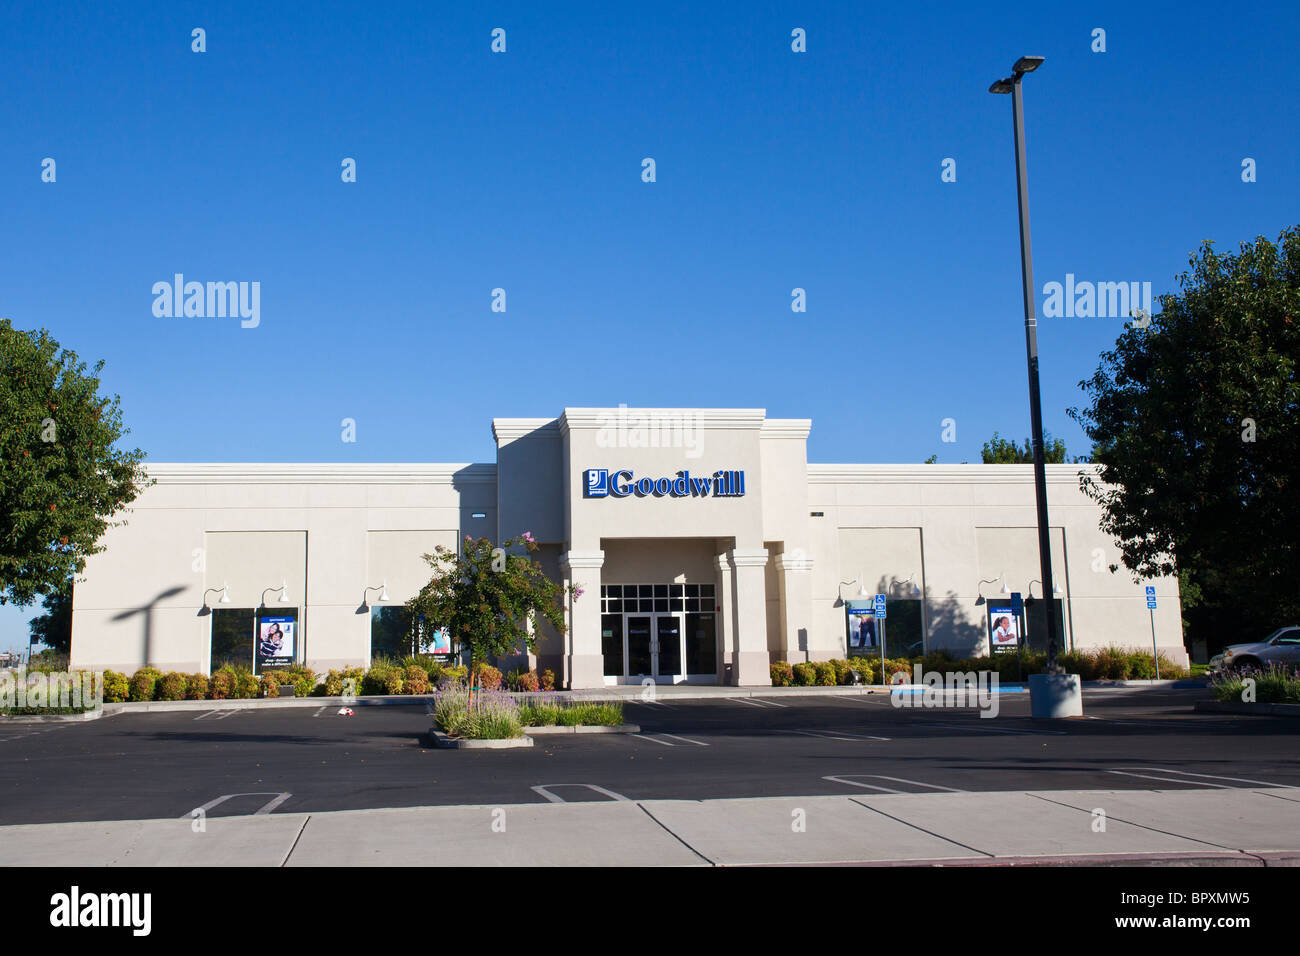 A Goodwill Industries store - Stock Image